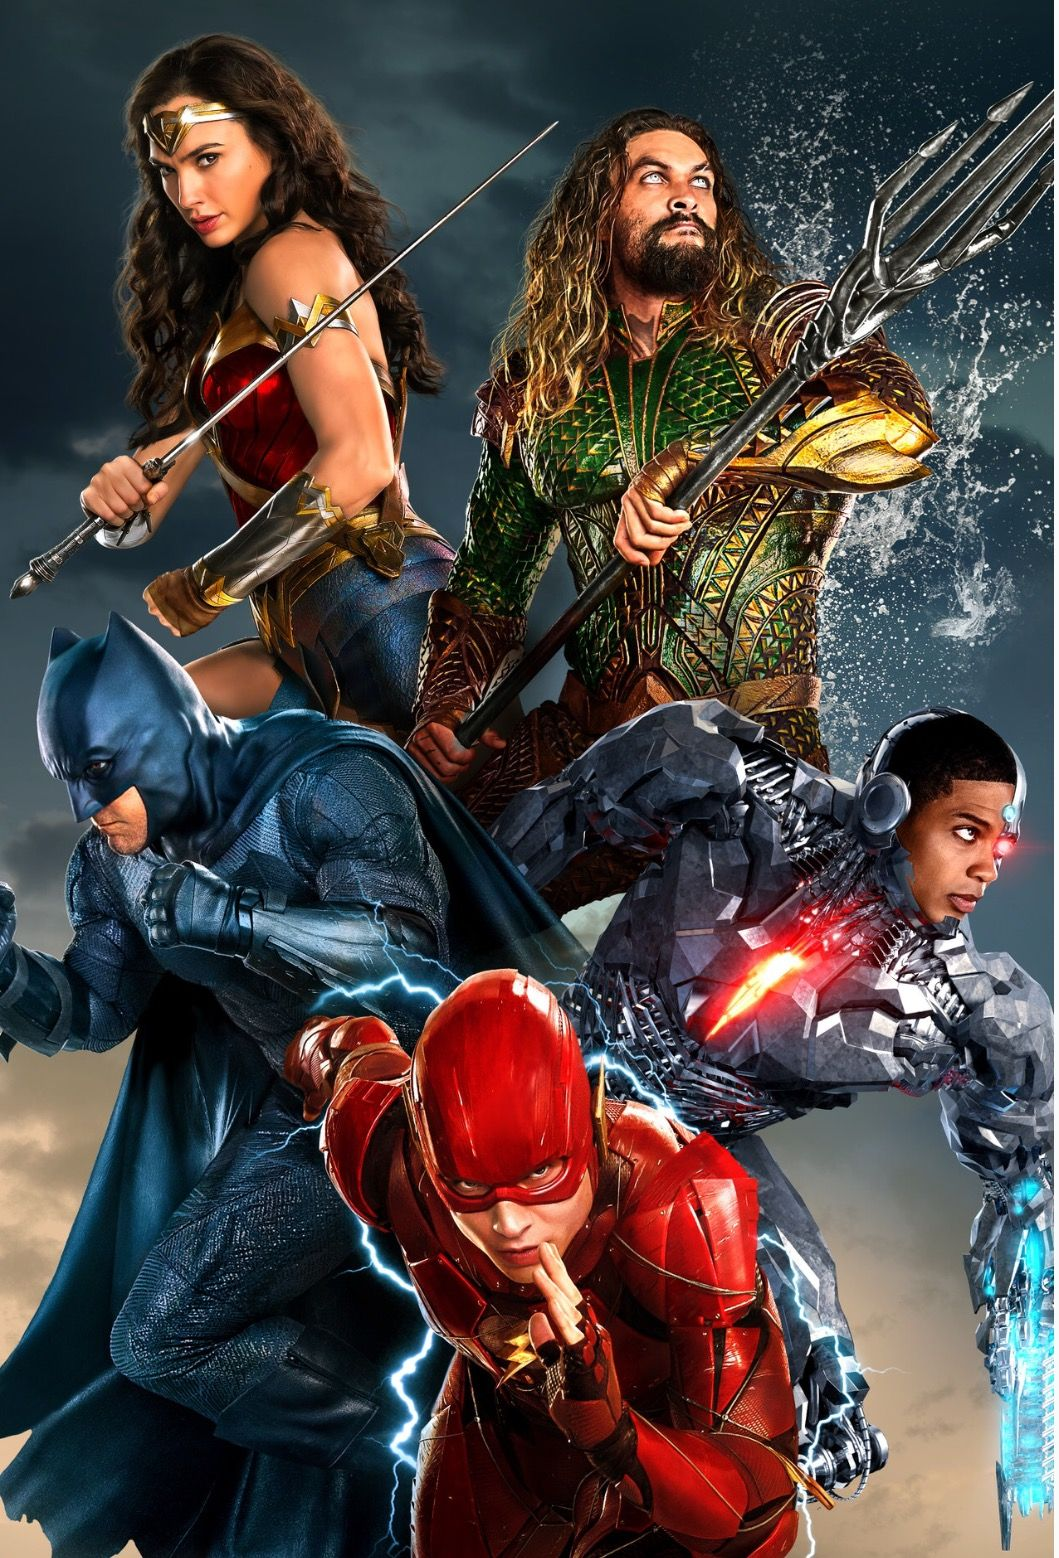 Contact Support Justice League Full Movie Justice League 2017 New Justice League